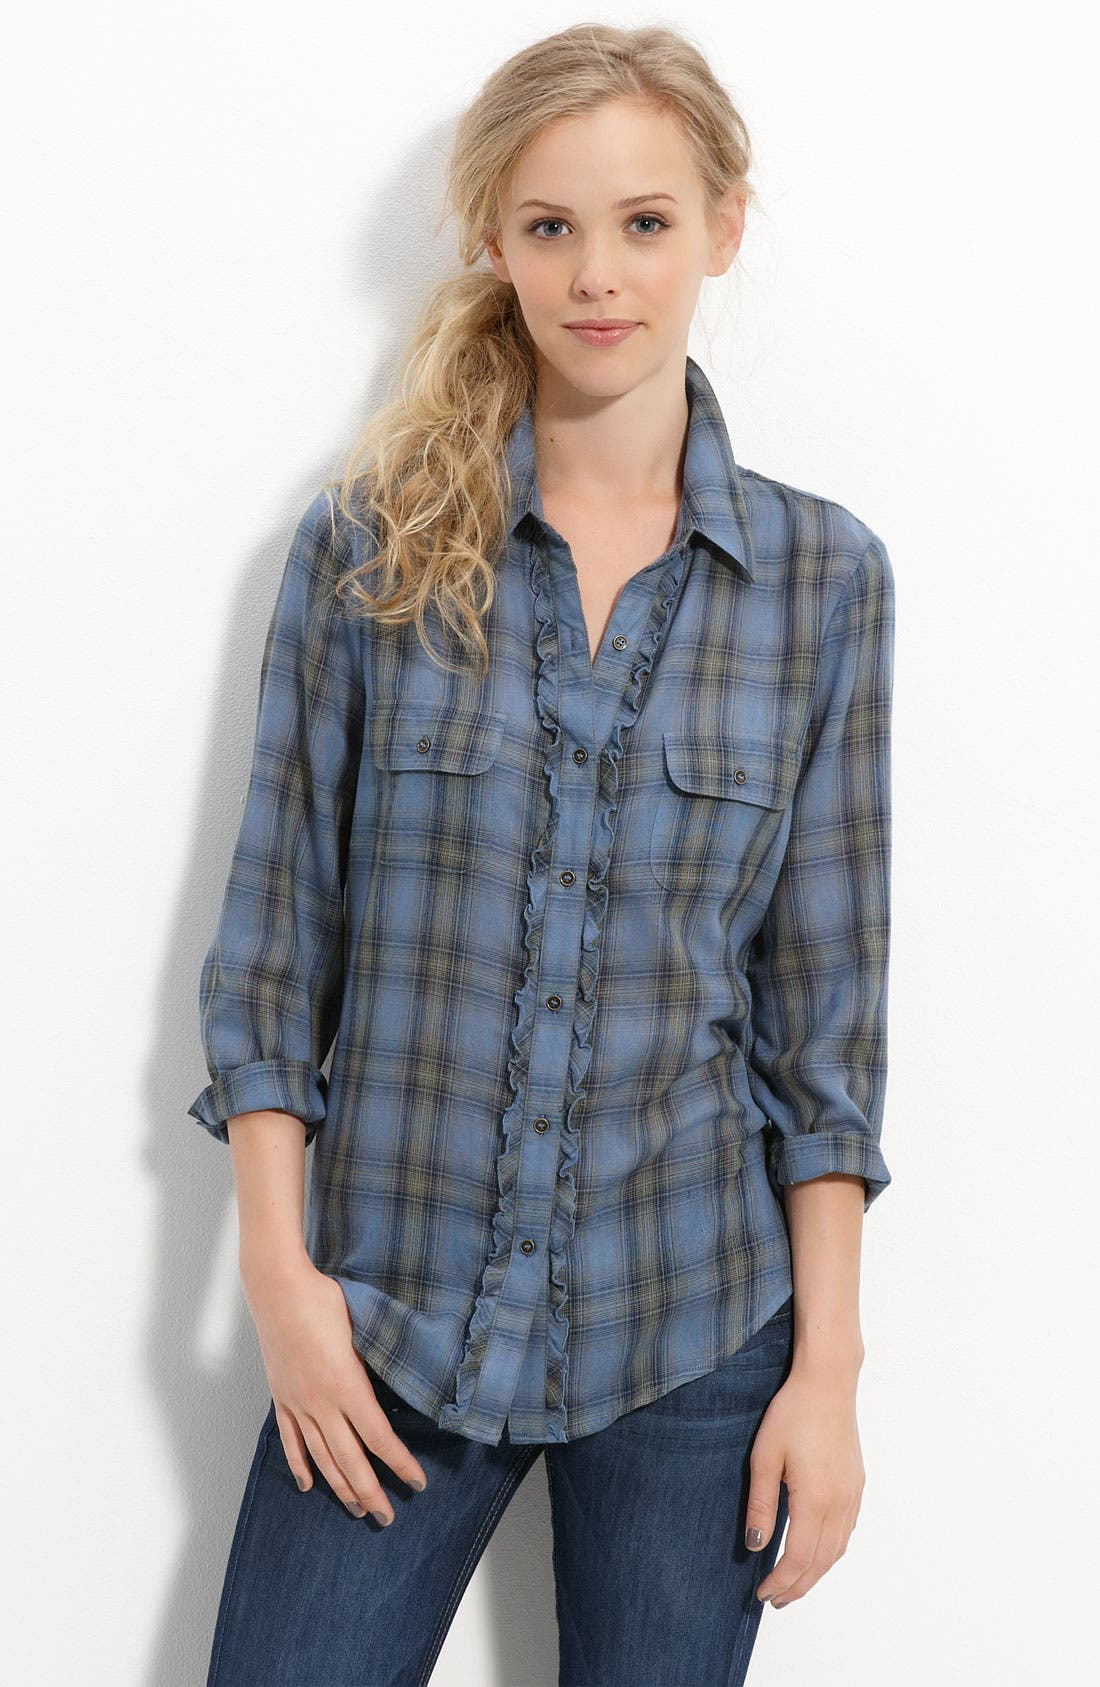 Alternate Image 1 Selected - Love on a Hanger Ruffled Plaid Shirt (Juniors)